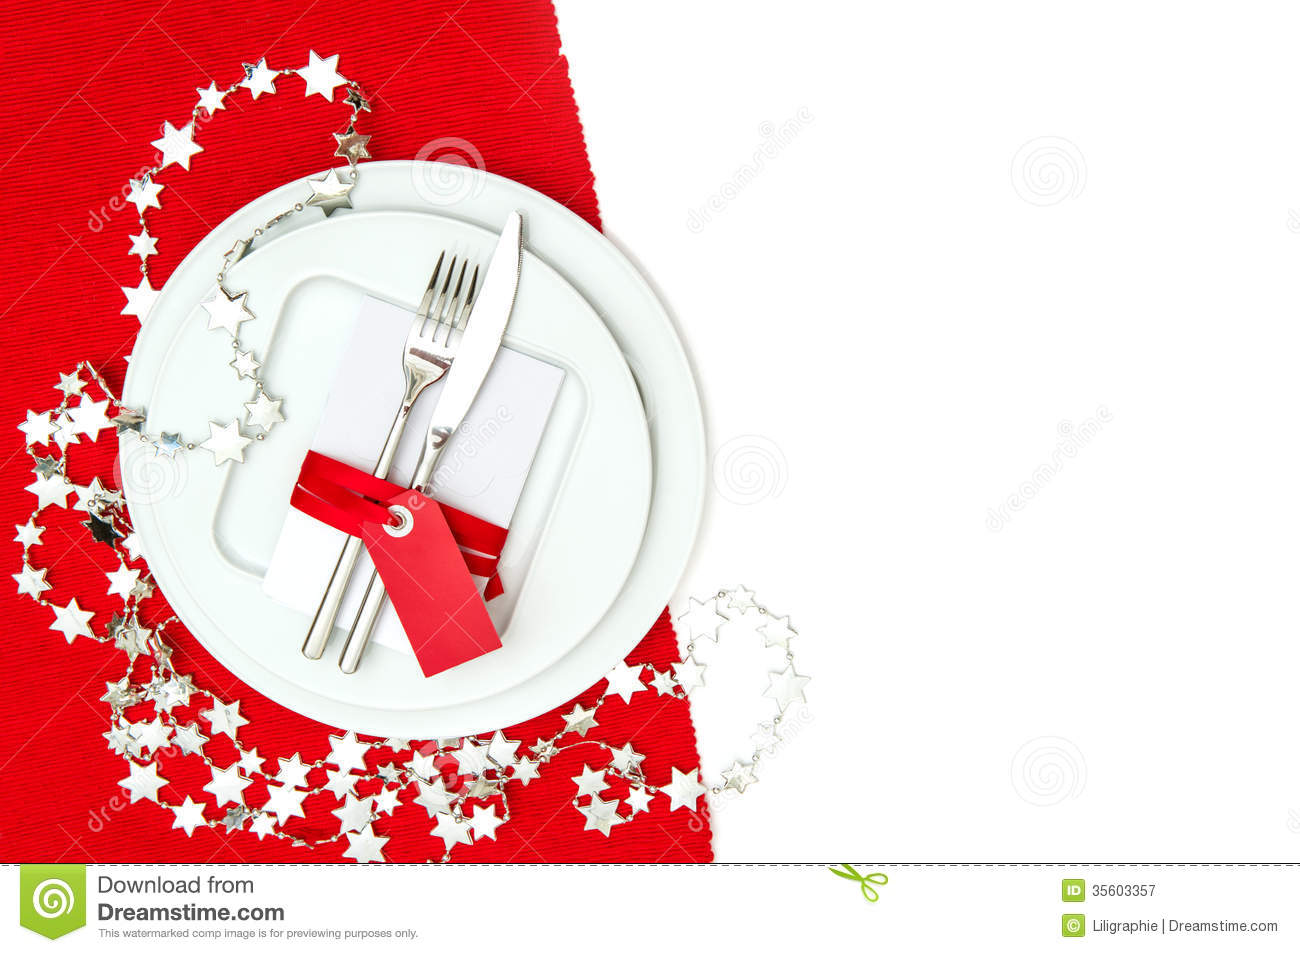 Christmas Table Place Setting Decoration In Red And Silver ...